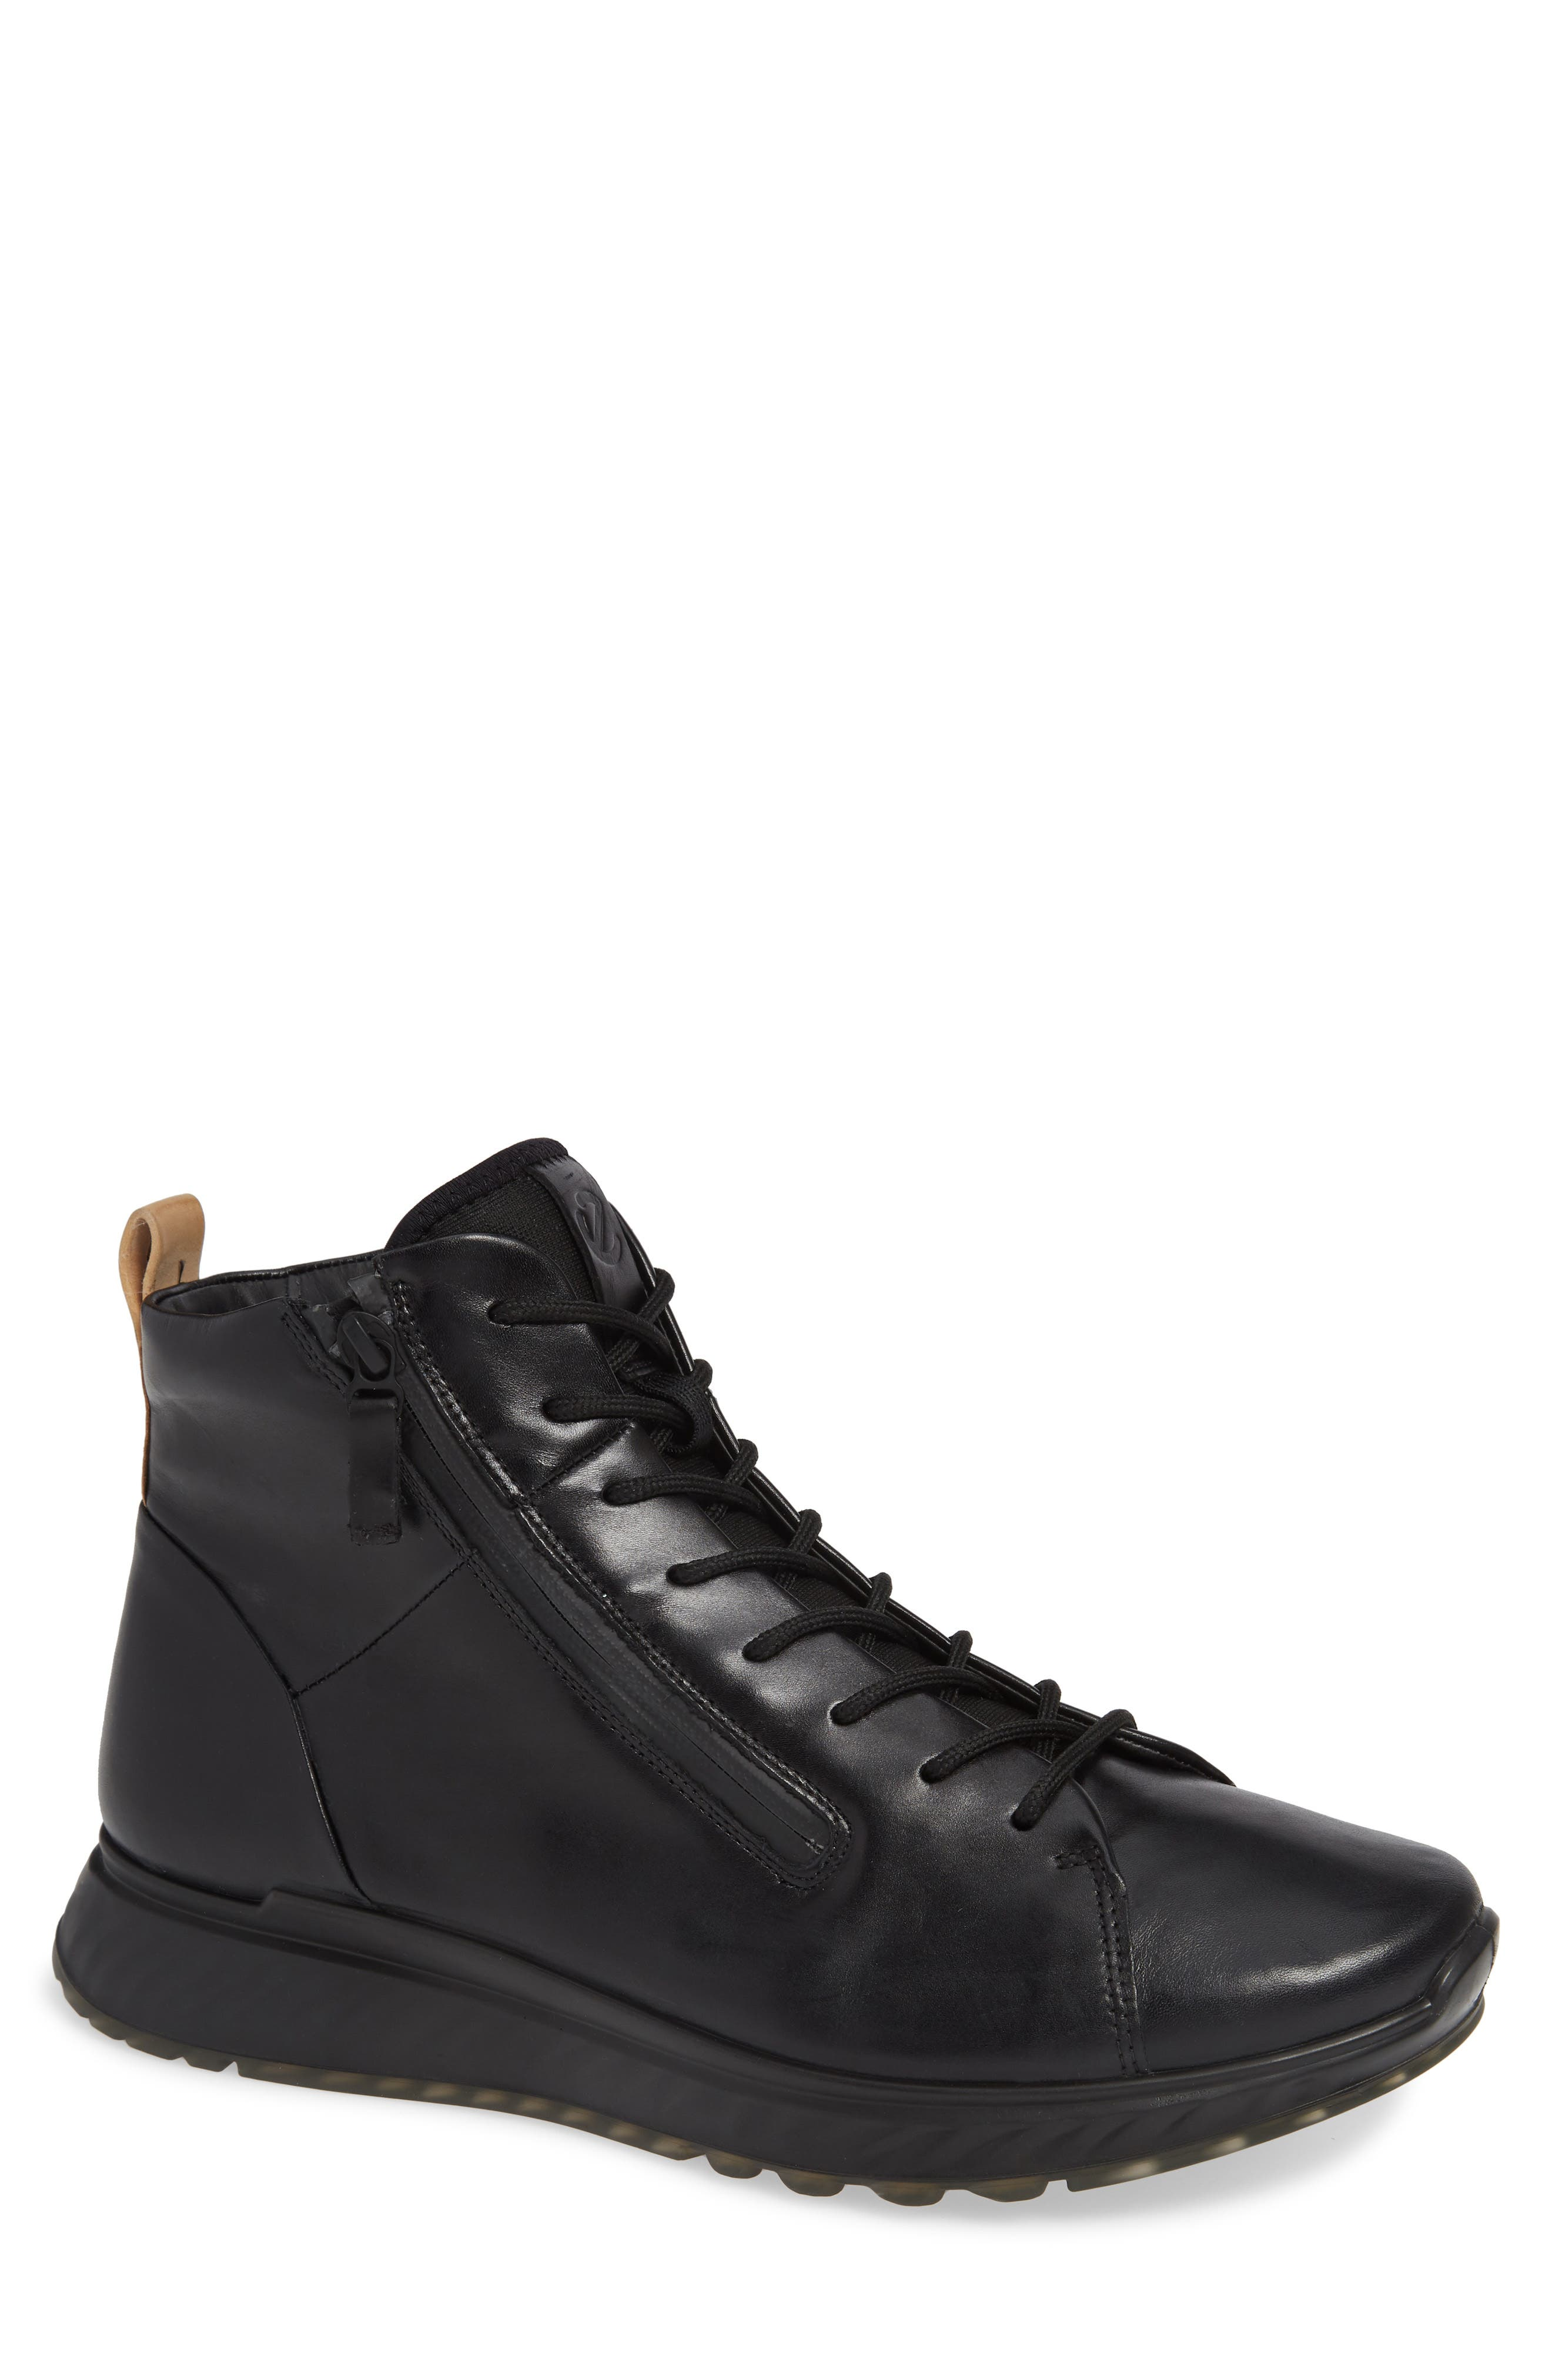 ST1 High Top Sneaker,                         Main,                         color, BLACK/BLACK LEATHER